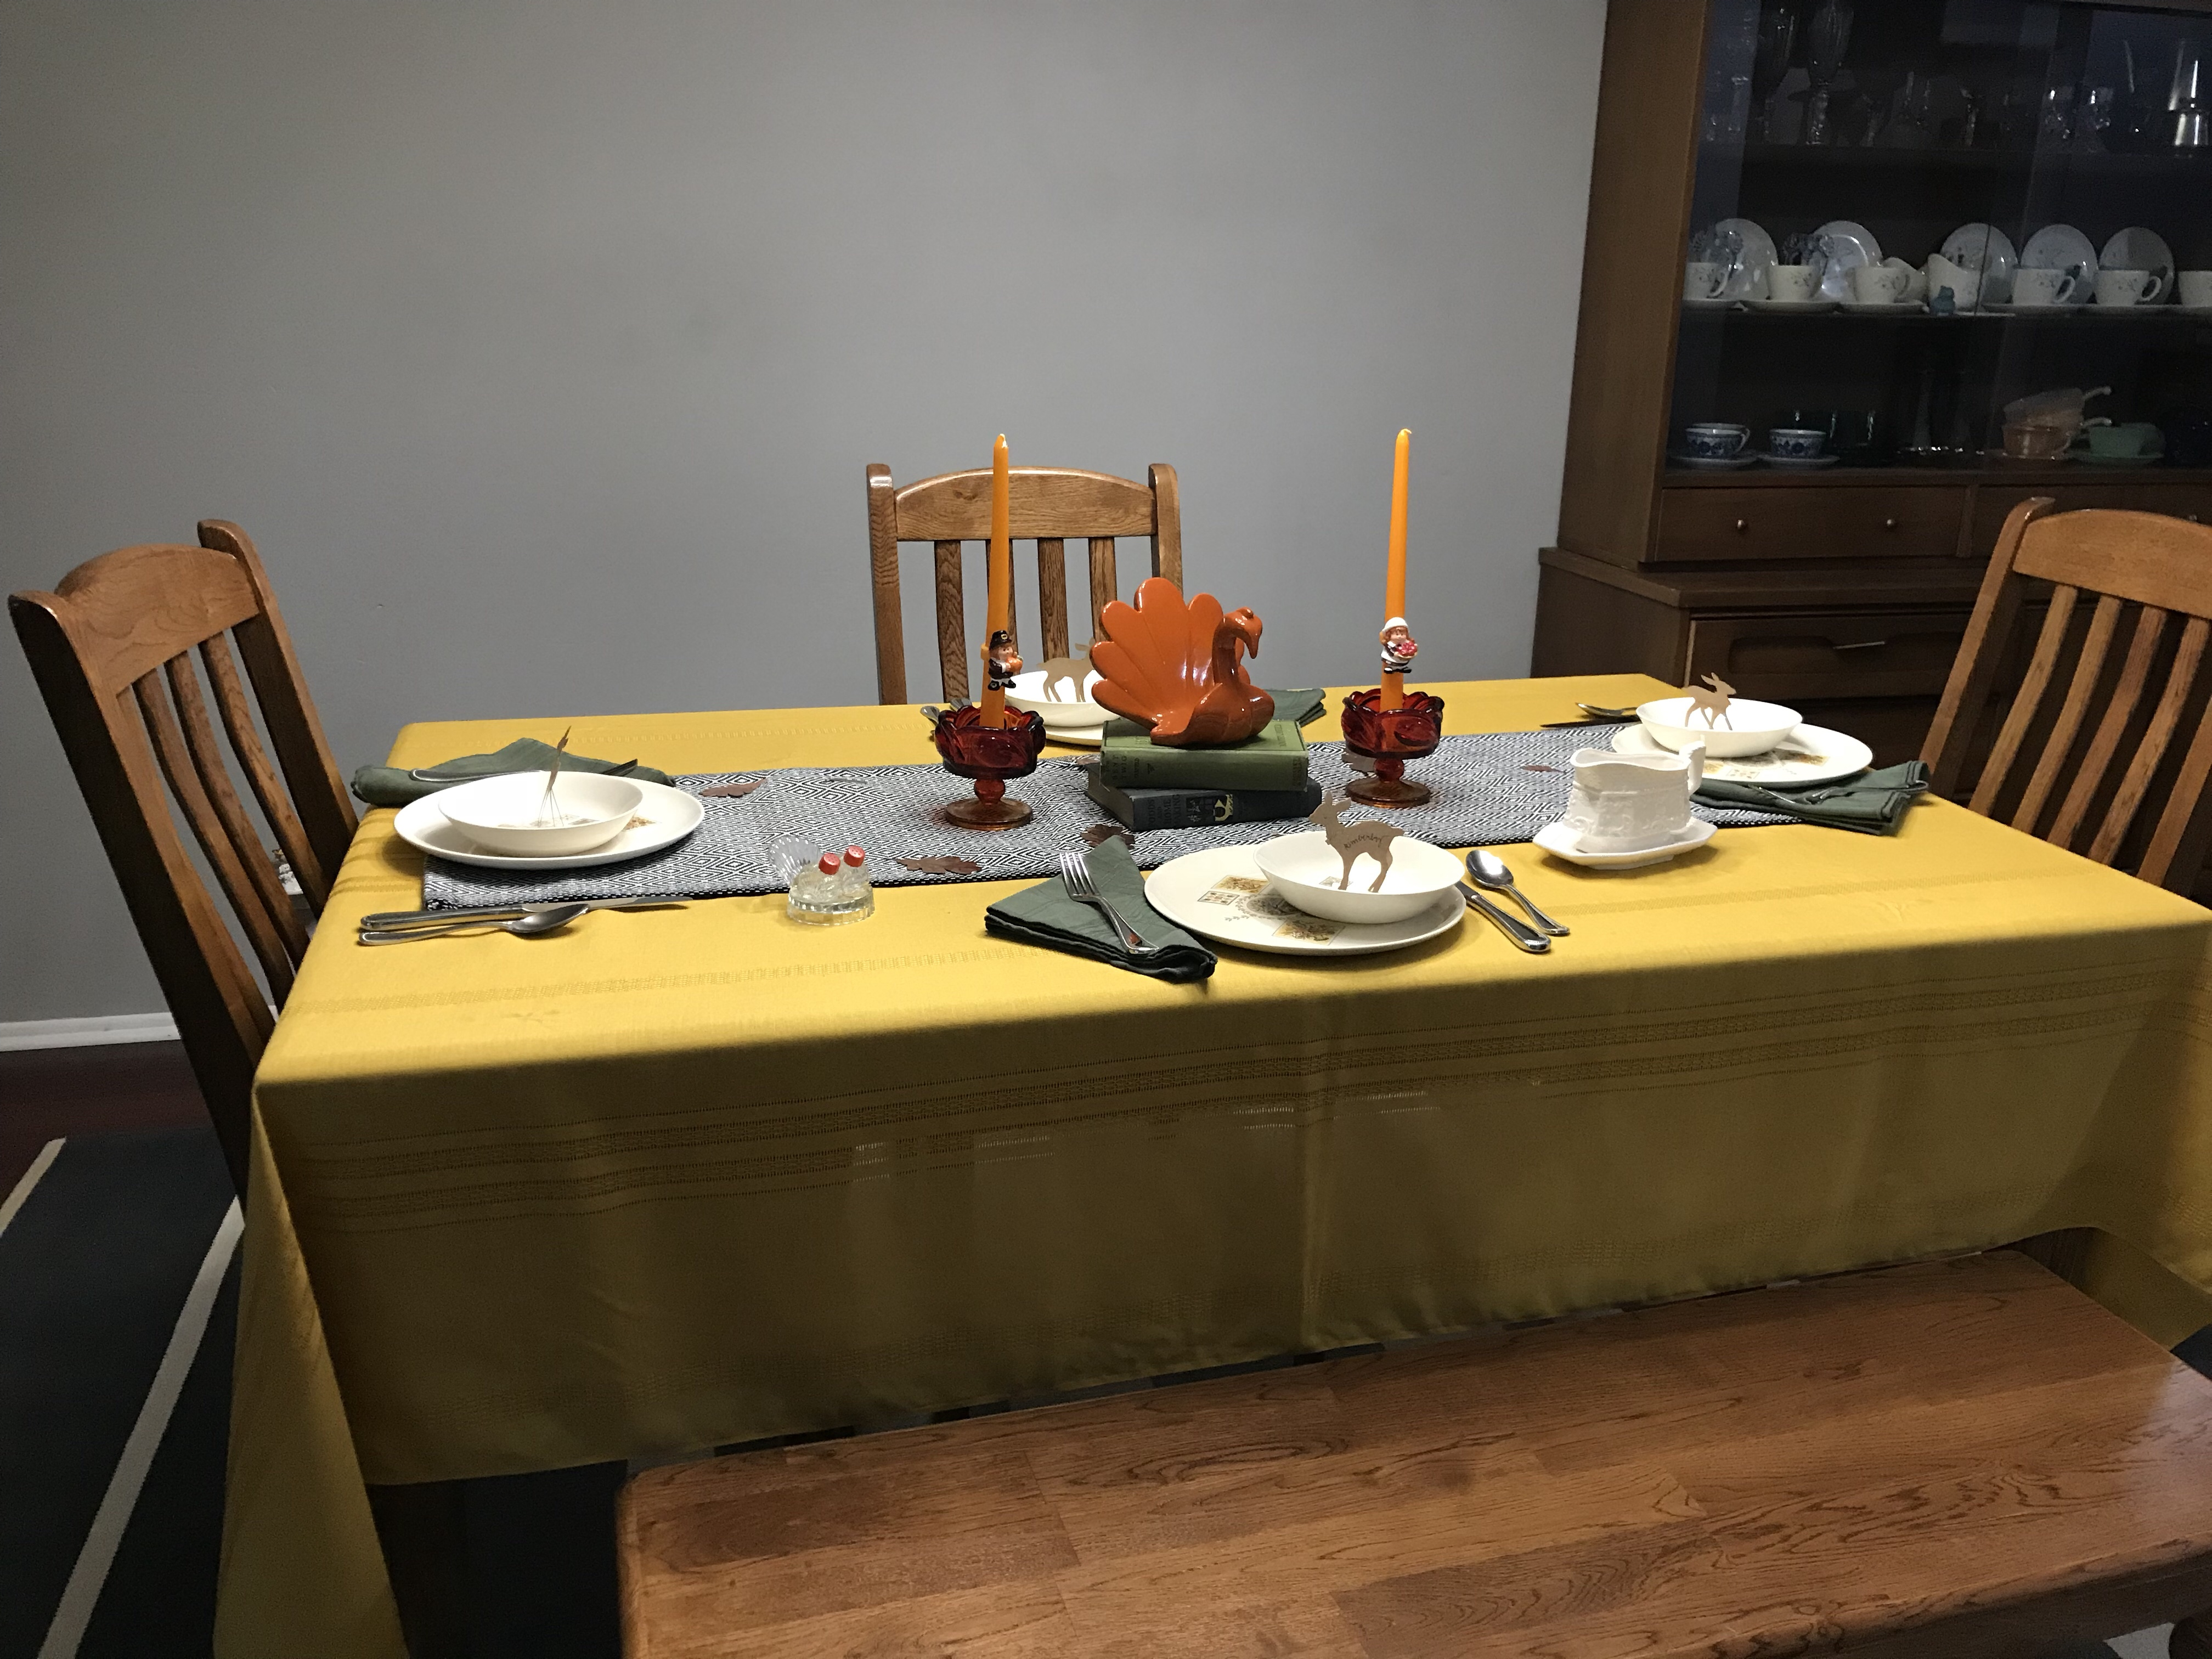 thanksgiving table, vintage tablecloth, vintage dishes, table settings